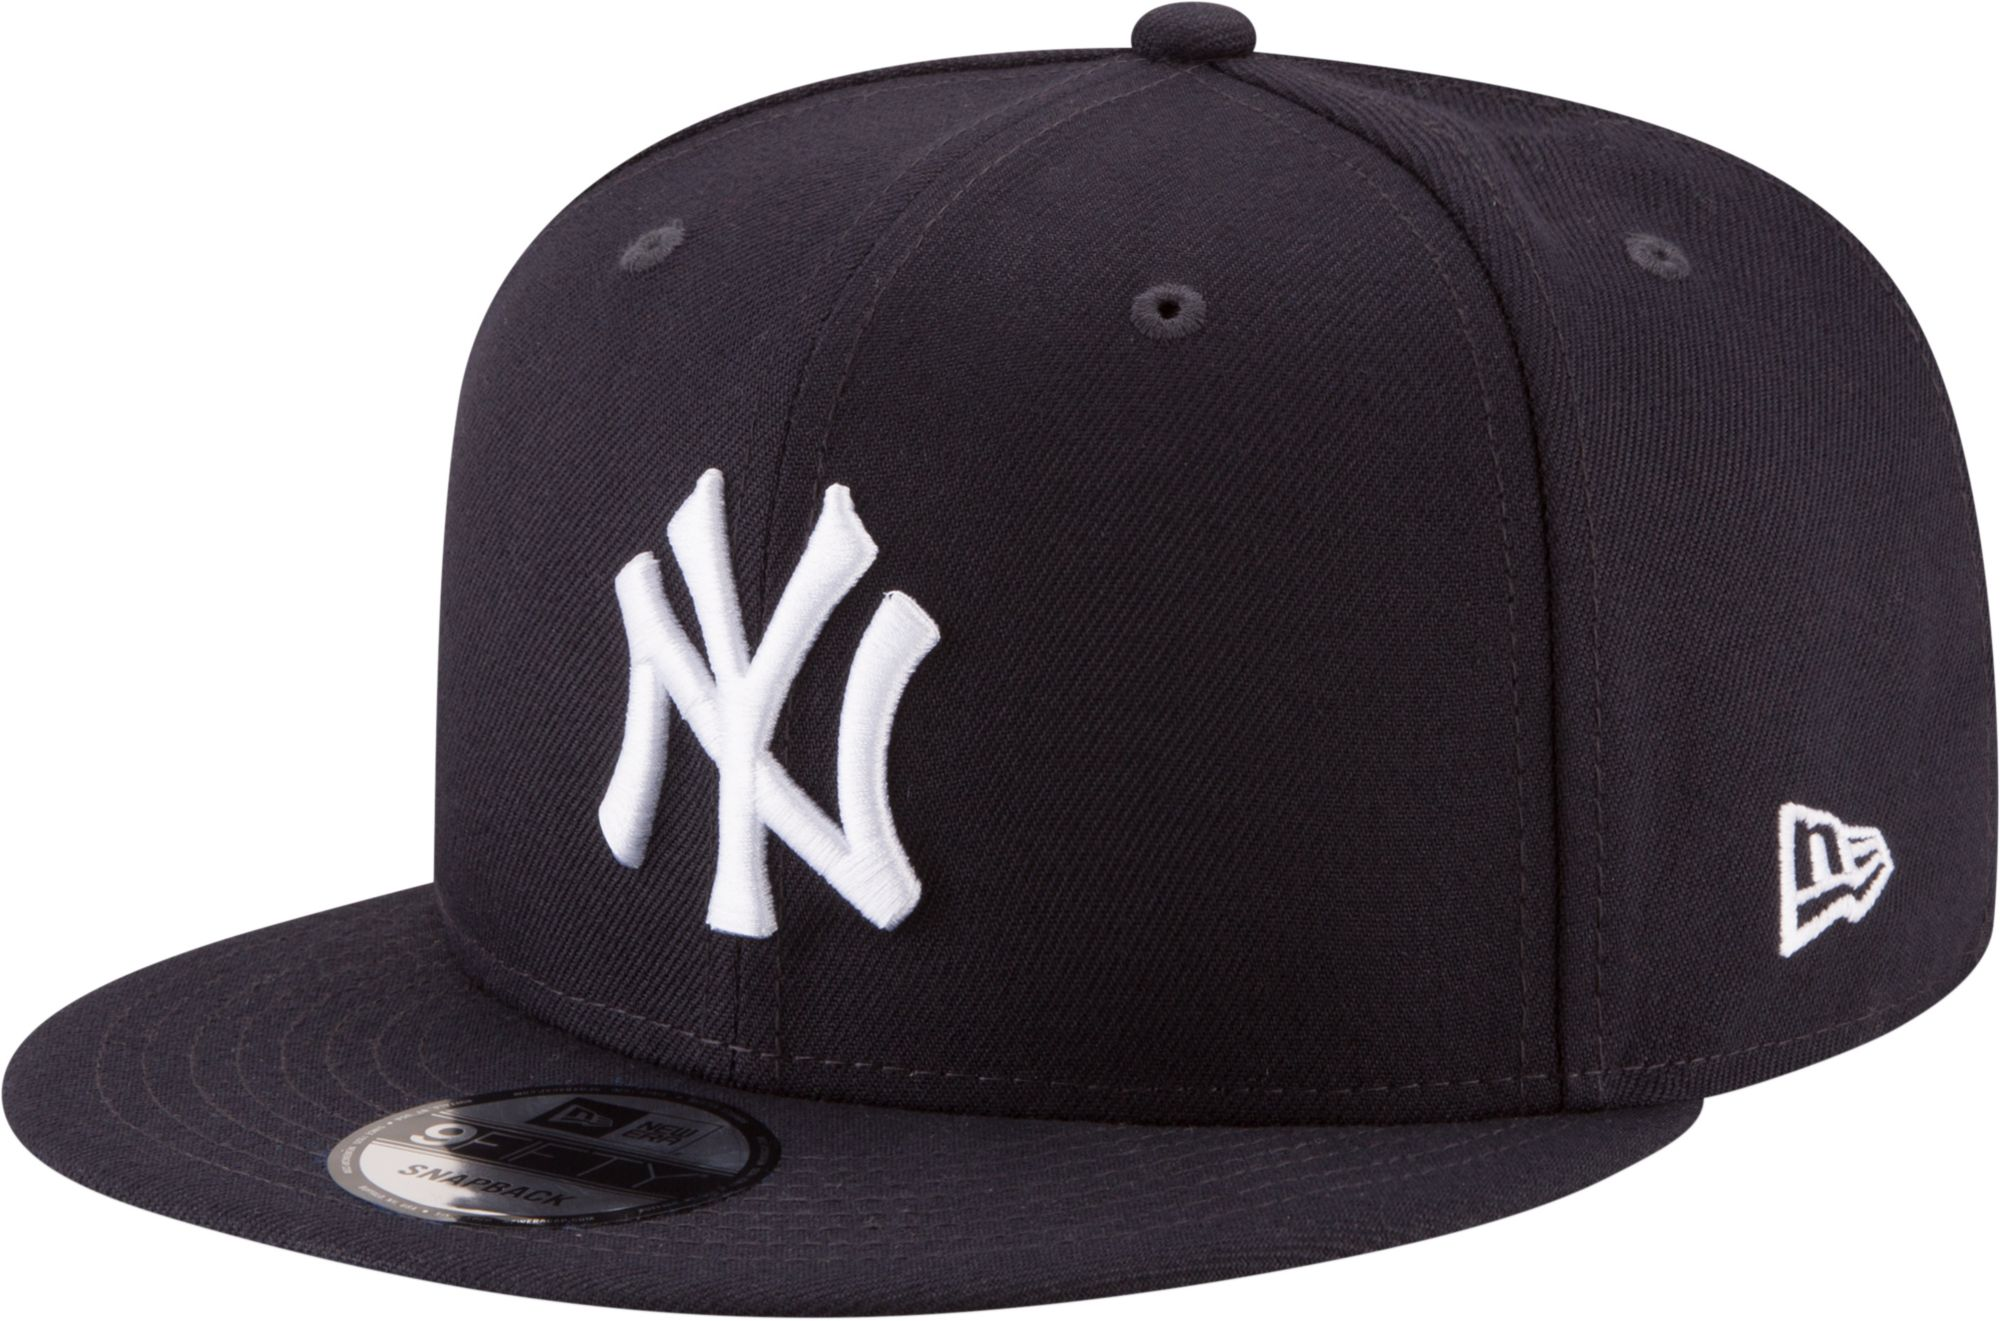 reputable site 31a03 6048b ... coupon code for new era mens new york yankees 9fifty adjustable snapback  hat 9beff b51ba